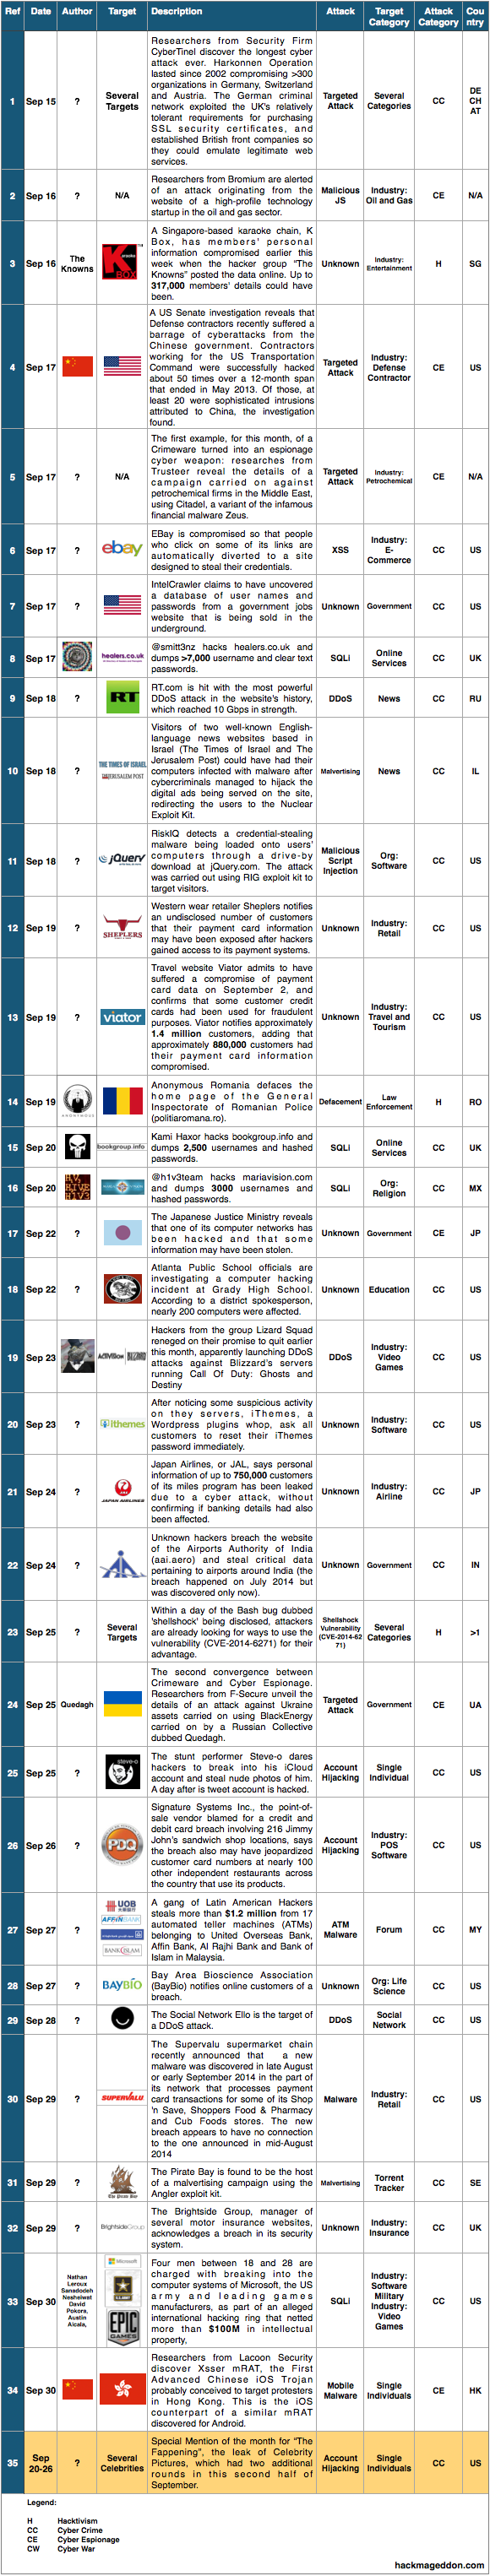 16-30-september-2014-cyber-attacks-timeline